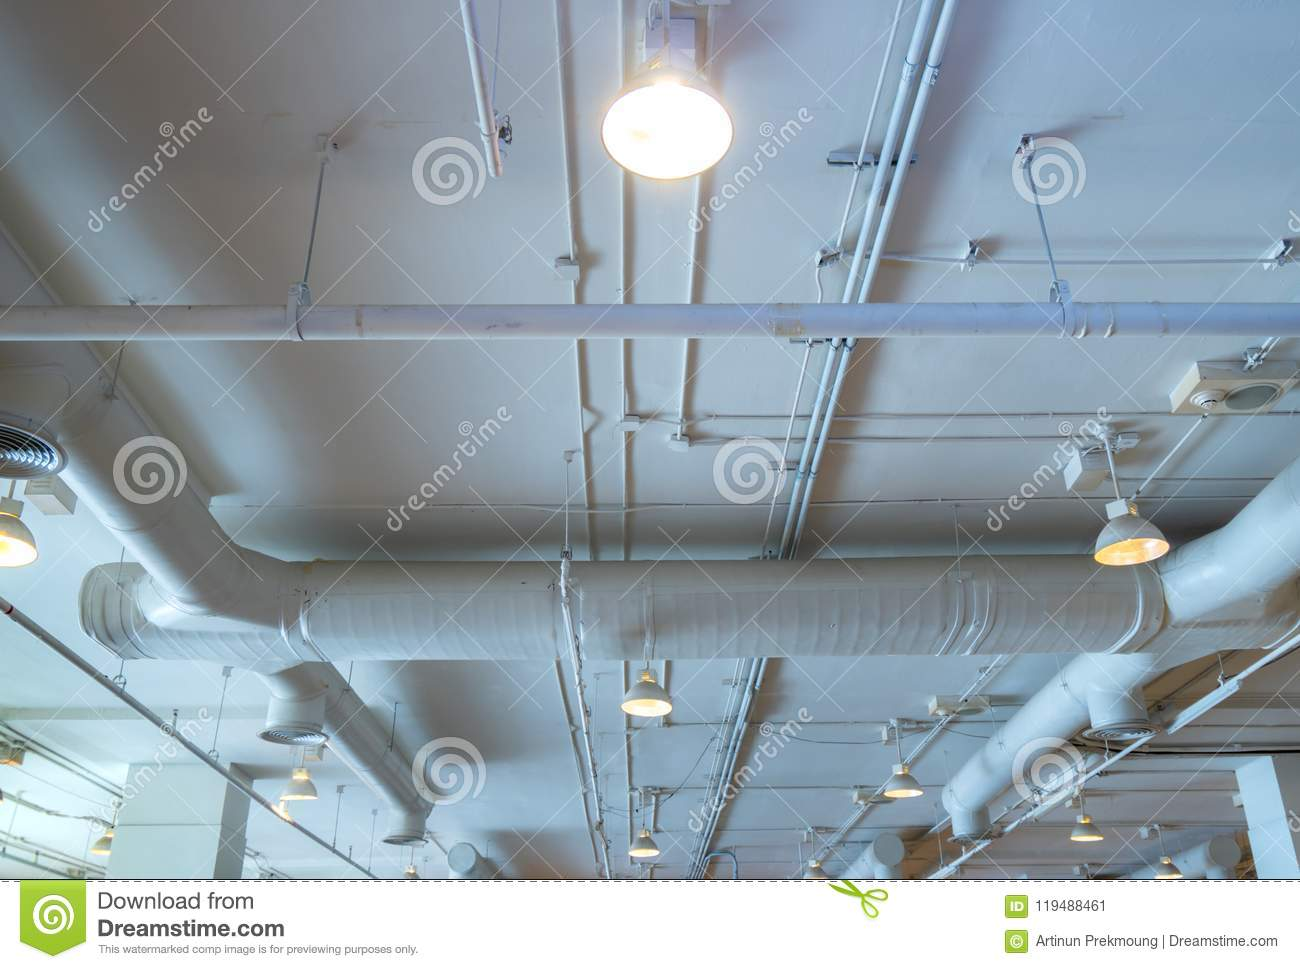 Air Duct Wiring And Plumbing In The Mall Conditioner Pipe A Building System Interior Concept